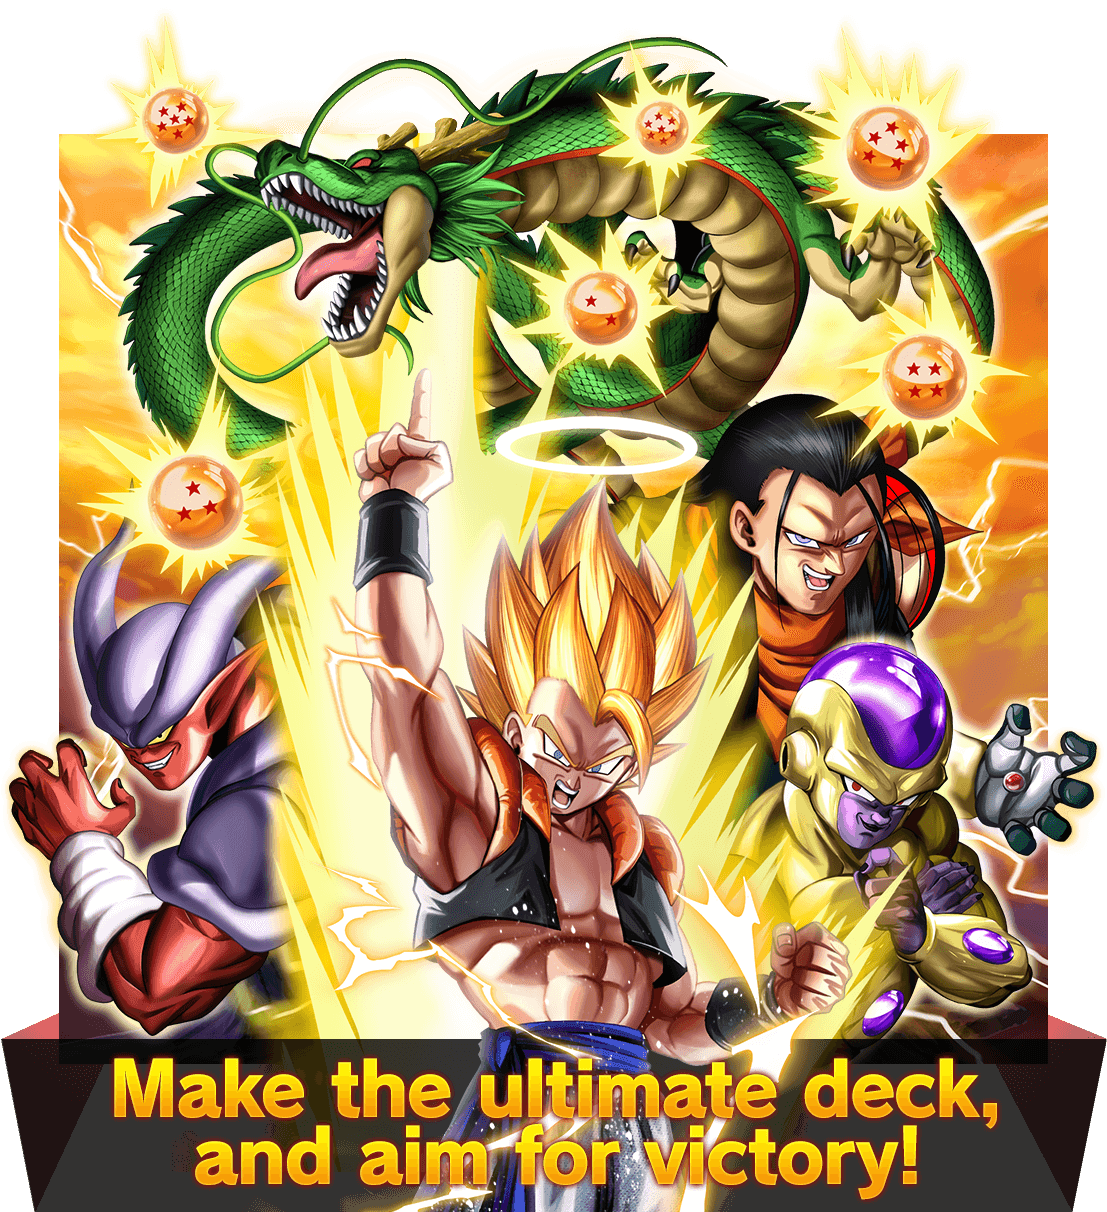 Make the ultimate deck, and aim for victory!